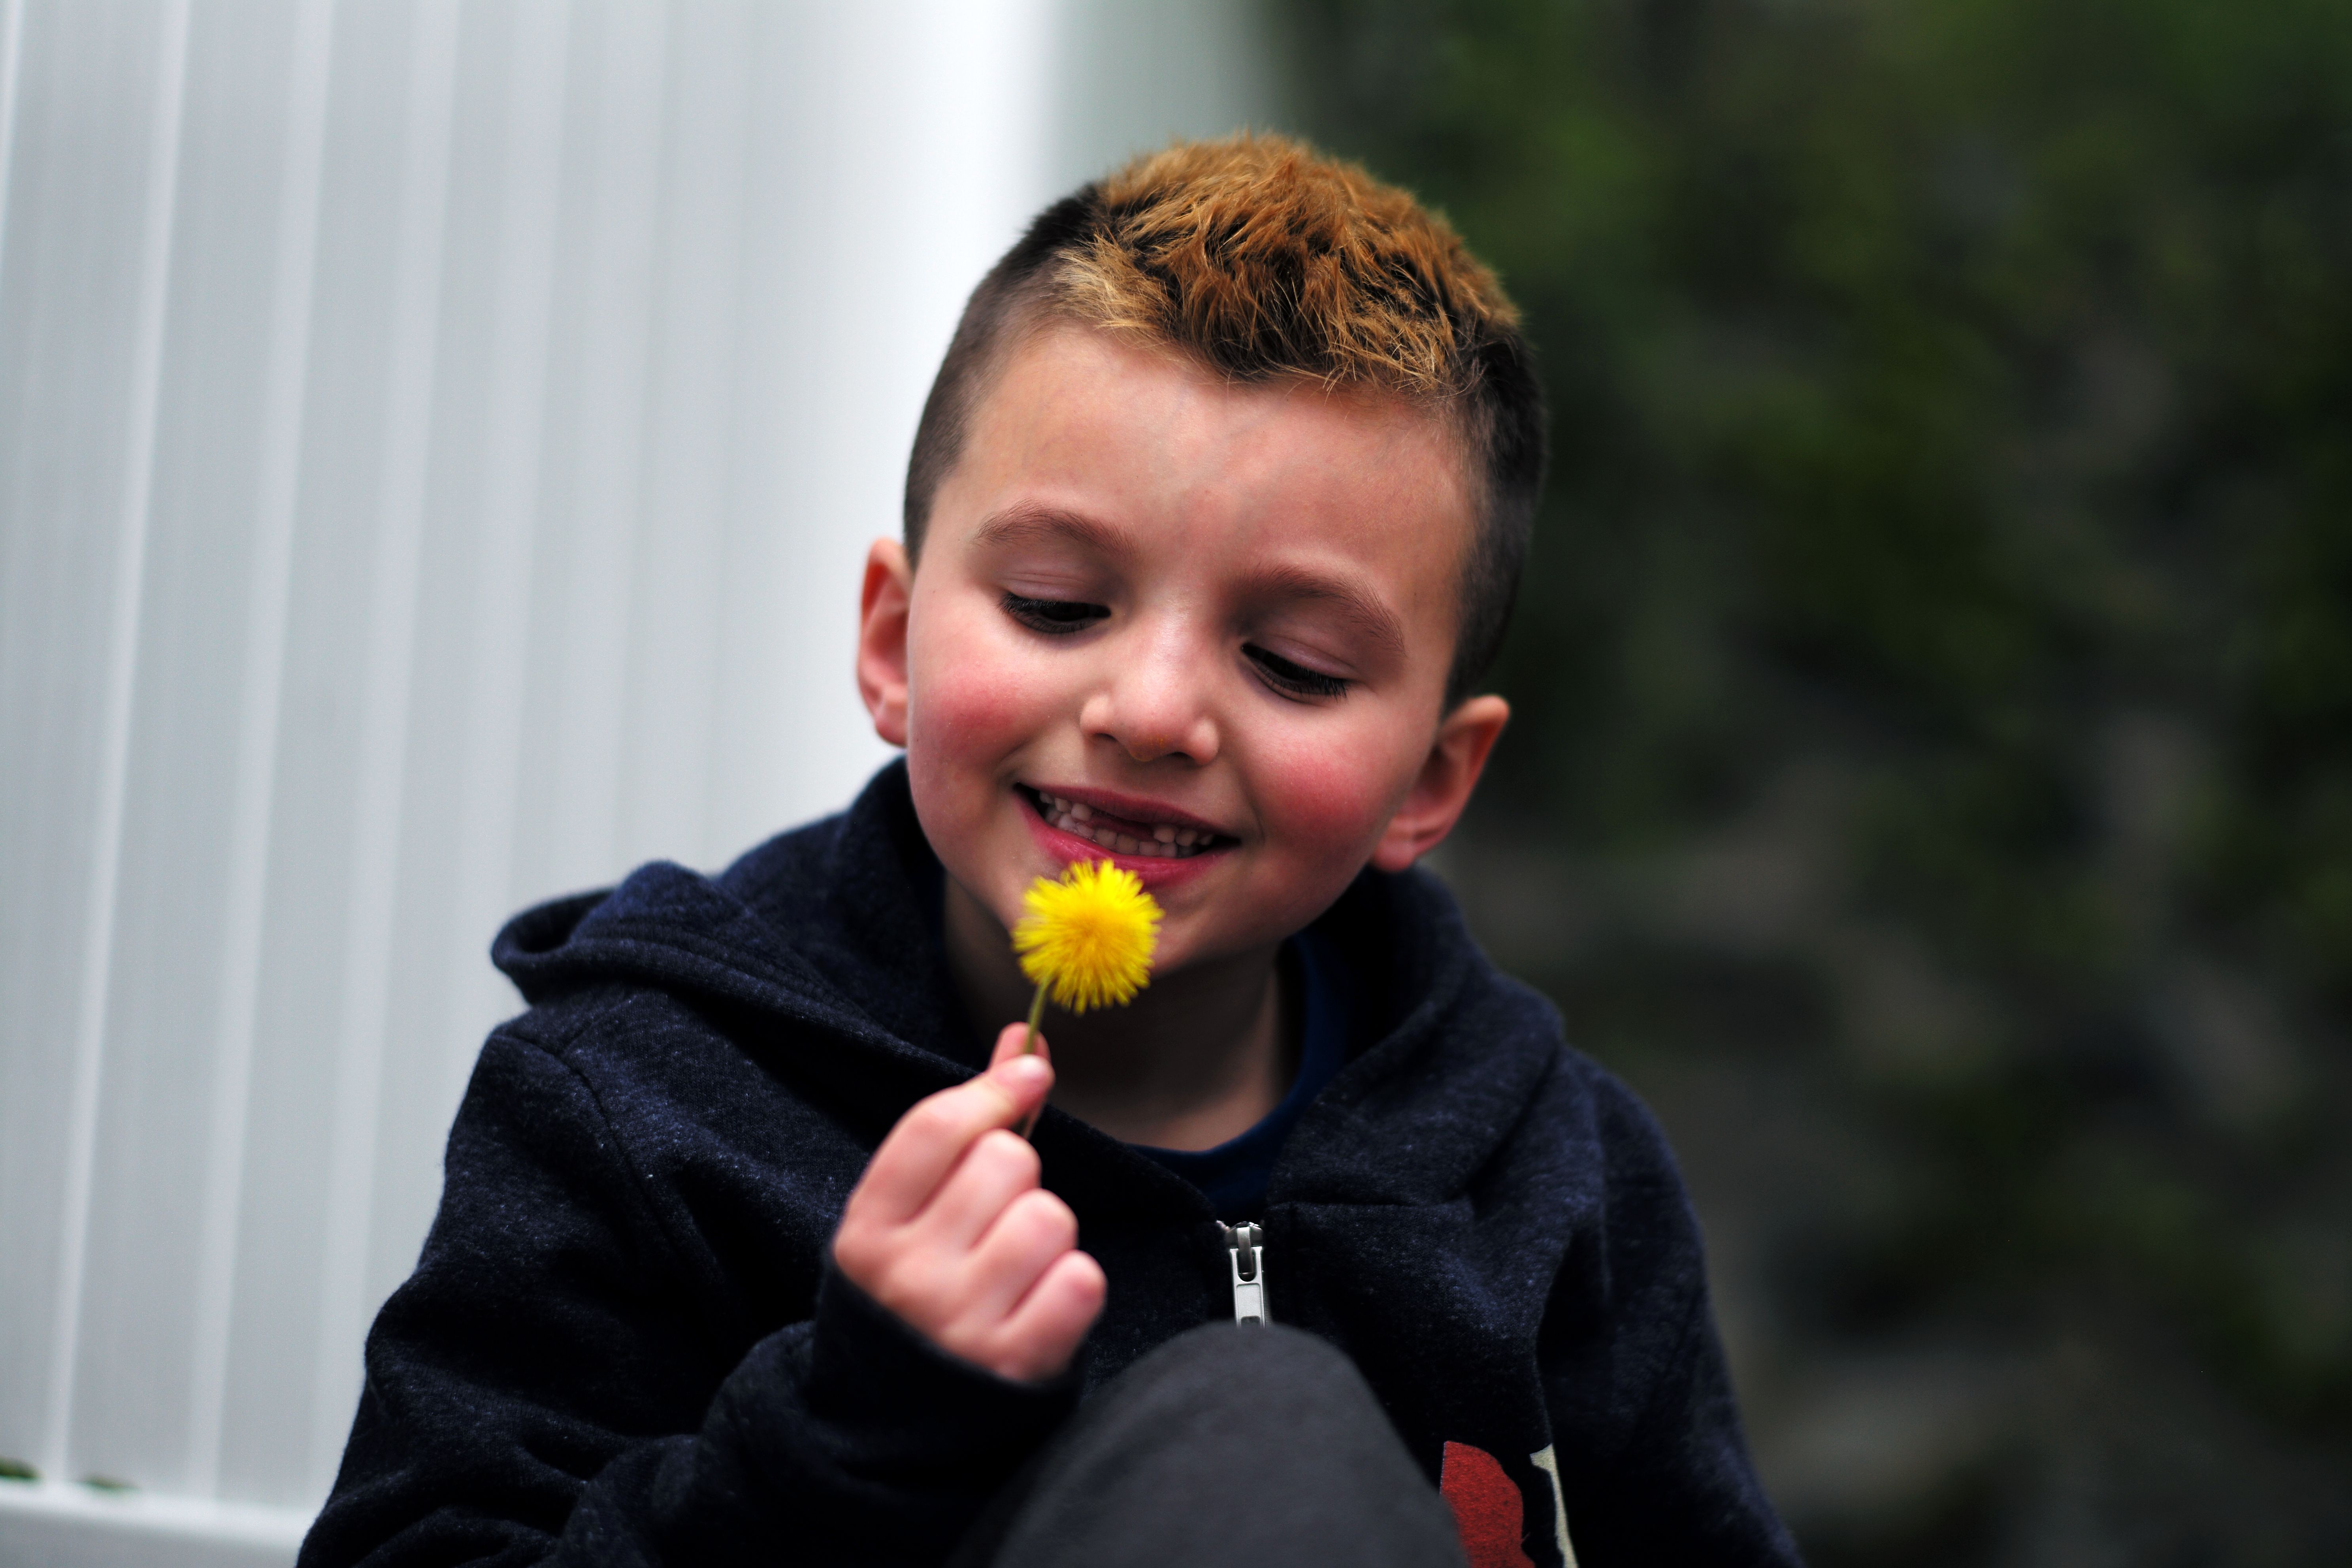 """Seven-year-old transgender boy Jacob Lemay poses for photos in the yard of his home in Melrose, Massachusetts, on May 9, 2017. For months in the Lemay home, the same phrase was repeated over and over by their troubled young child, barely more than a toddler, who showed growing signs of depression. """"It is a mistake, I am not a girl, I am a boy."""" That convinced the Lemay family that Mia should become Jacob. / AFP PHOTO / JEWEL SAMAD"""